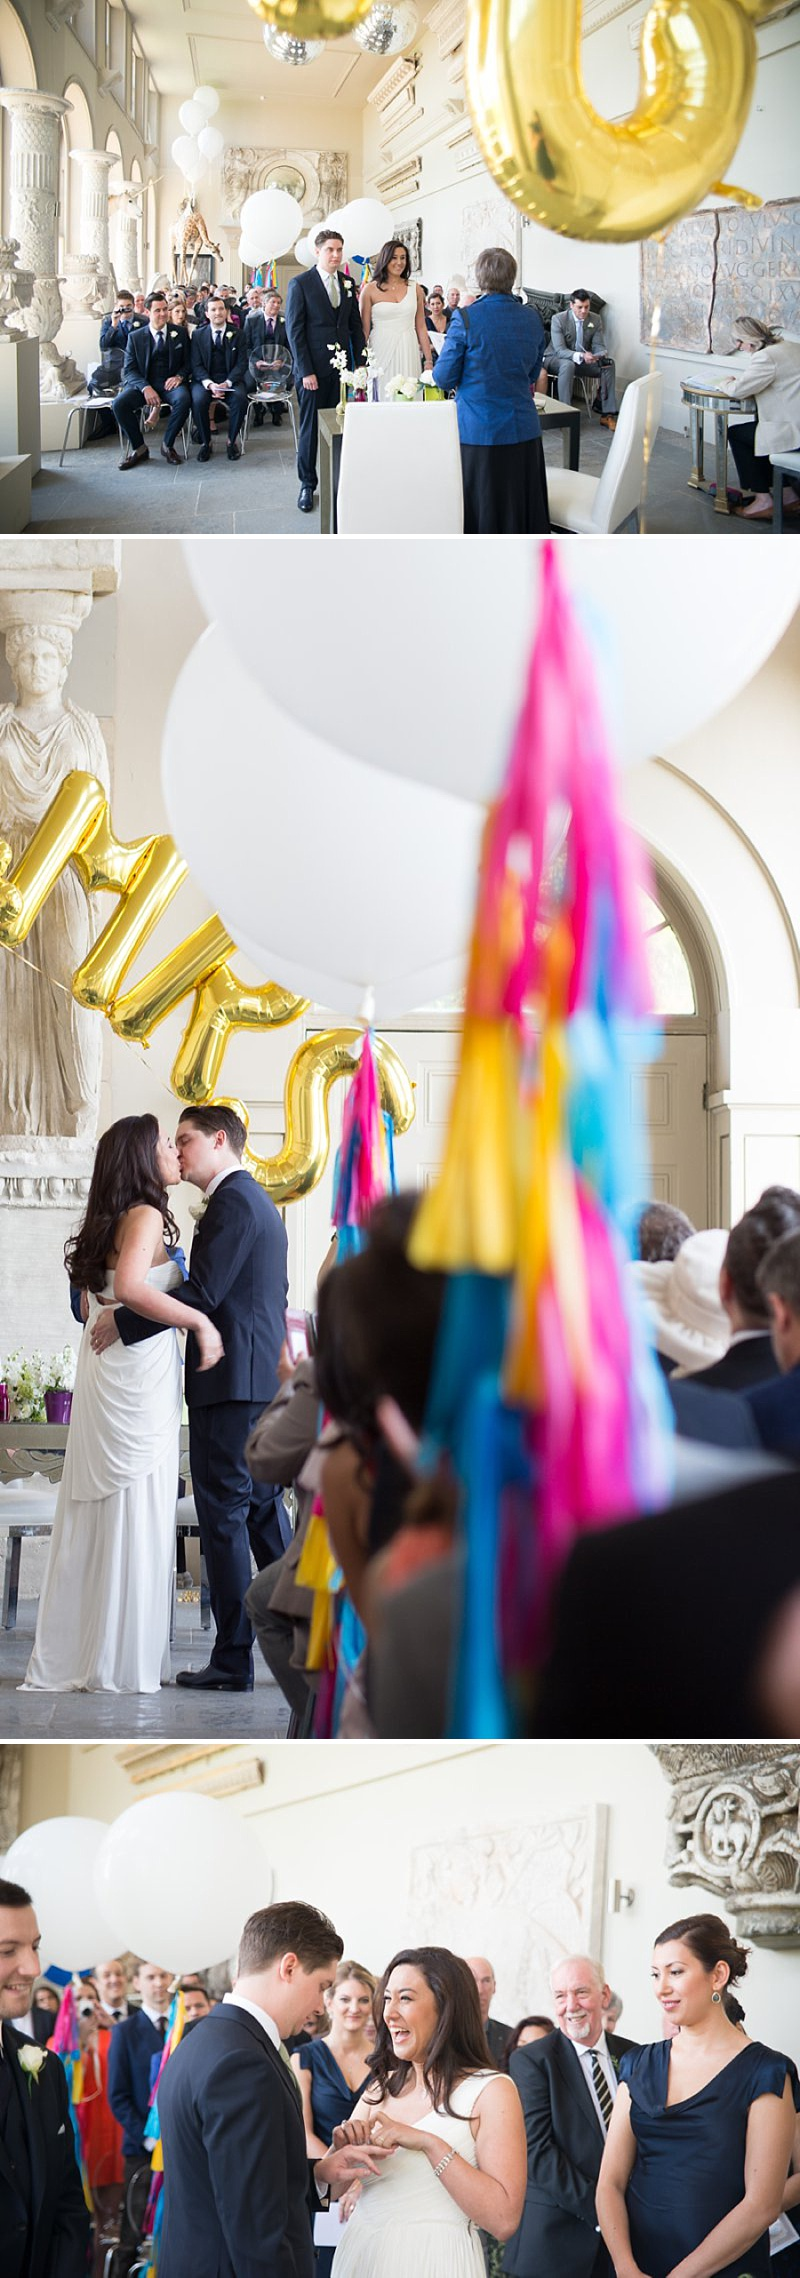 A gatsby themed wedding at Aynhoe Park with navy bridesmaids and bright balloons_0143